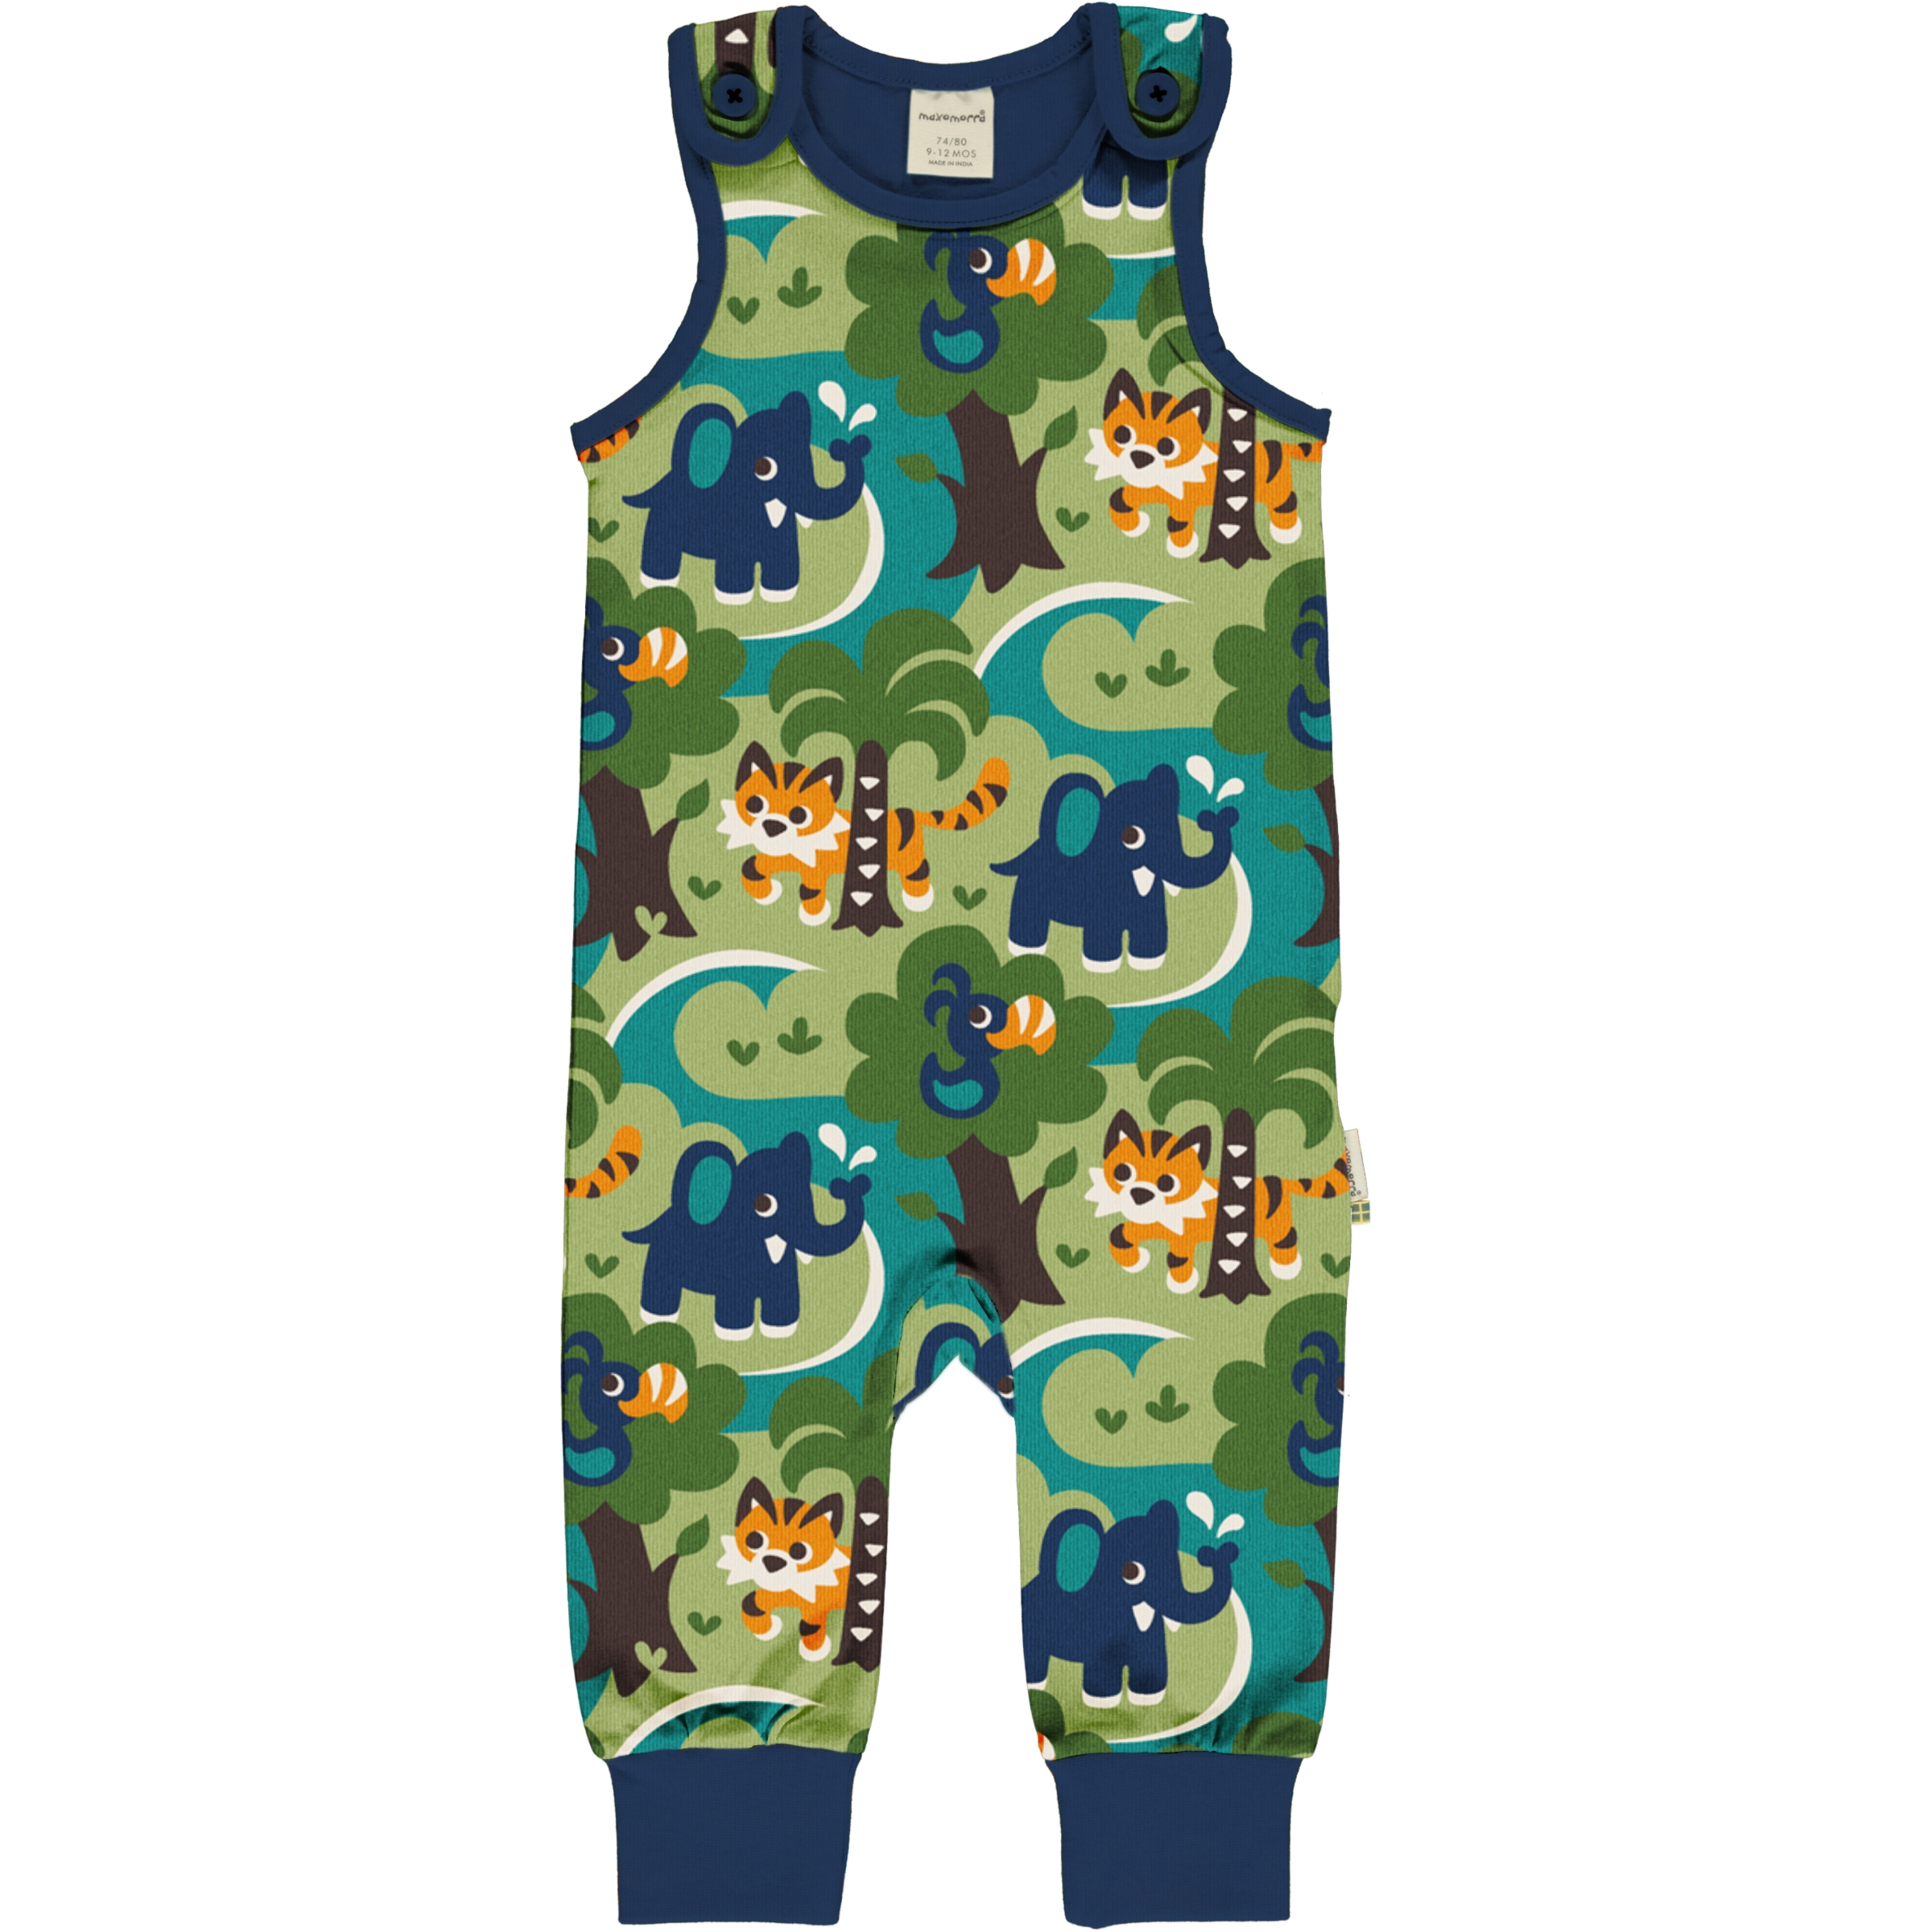 Maxomorra Baby Playsuit JUNGLE 62/68